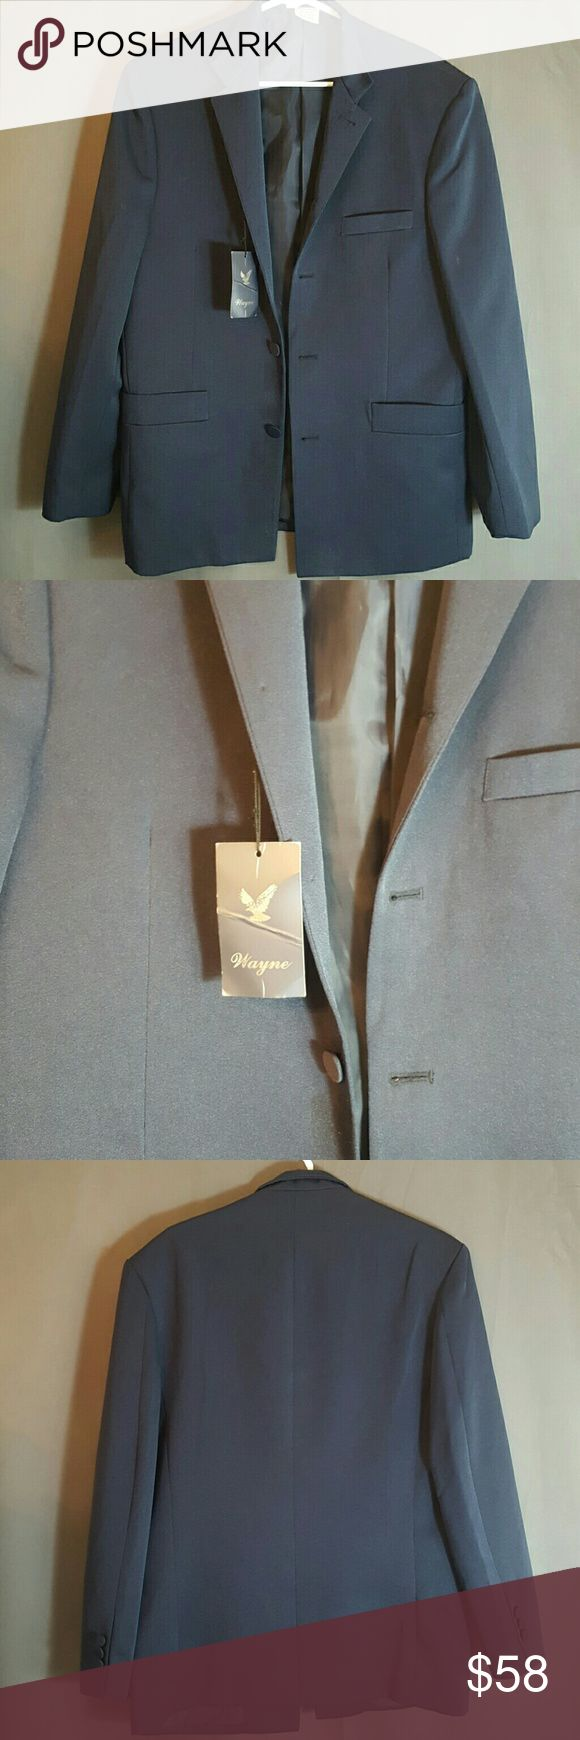 MENS NAVY BLUE BLAZER BRAND NEW WITH TAGS.  Simple and sharp navy blue suit jacket.  Wear out anywhere anytime, with a suit or over jeans casually. Wayne Jackets & Coats